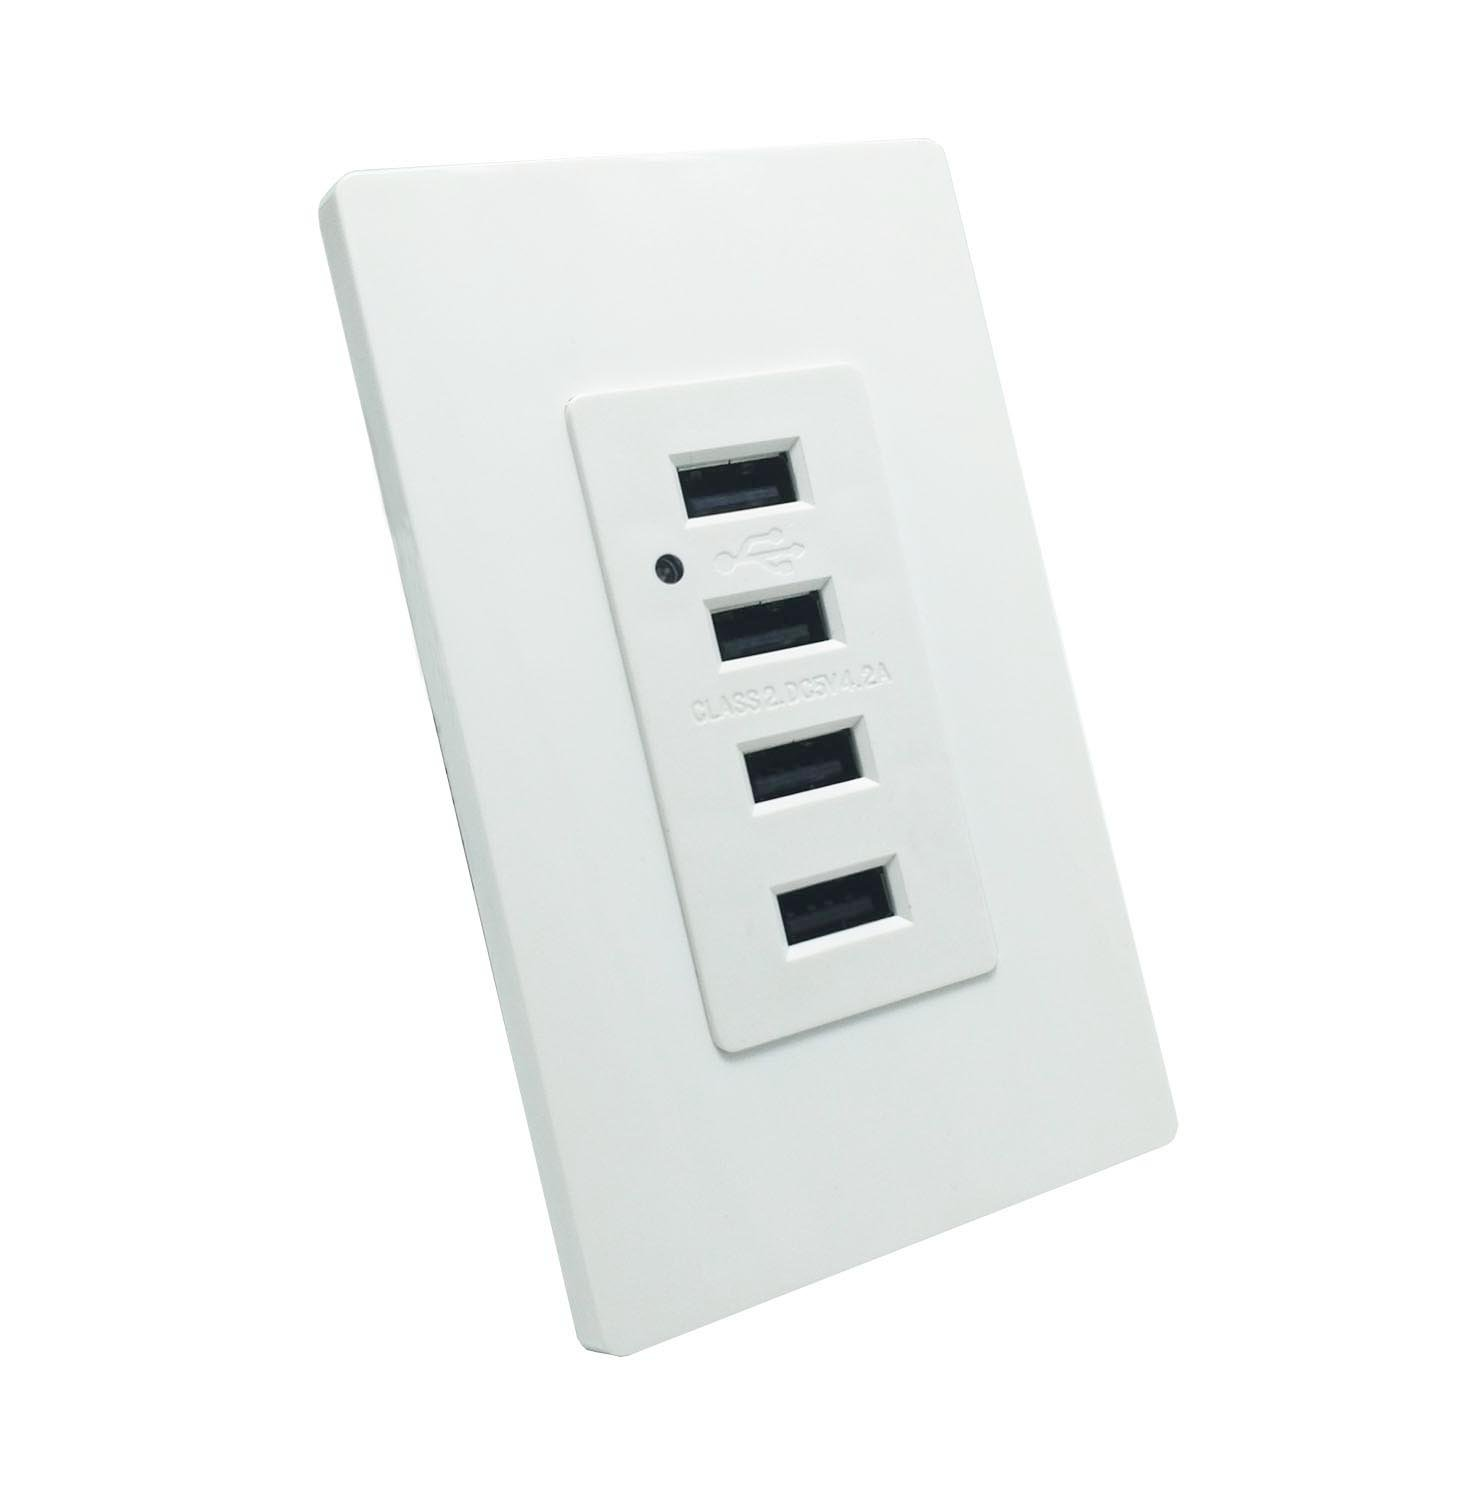 USB Charging Wall Outlet - LASOCKETS 4 USB Ports 4.2A 5V DC Smart High Speed Charger, White USB Receptacle with LED Light, 4.2 Amp 5 Volt USB Socket with 2 Free Wall Plates, UL Listed